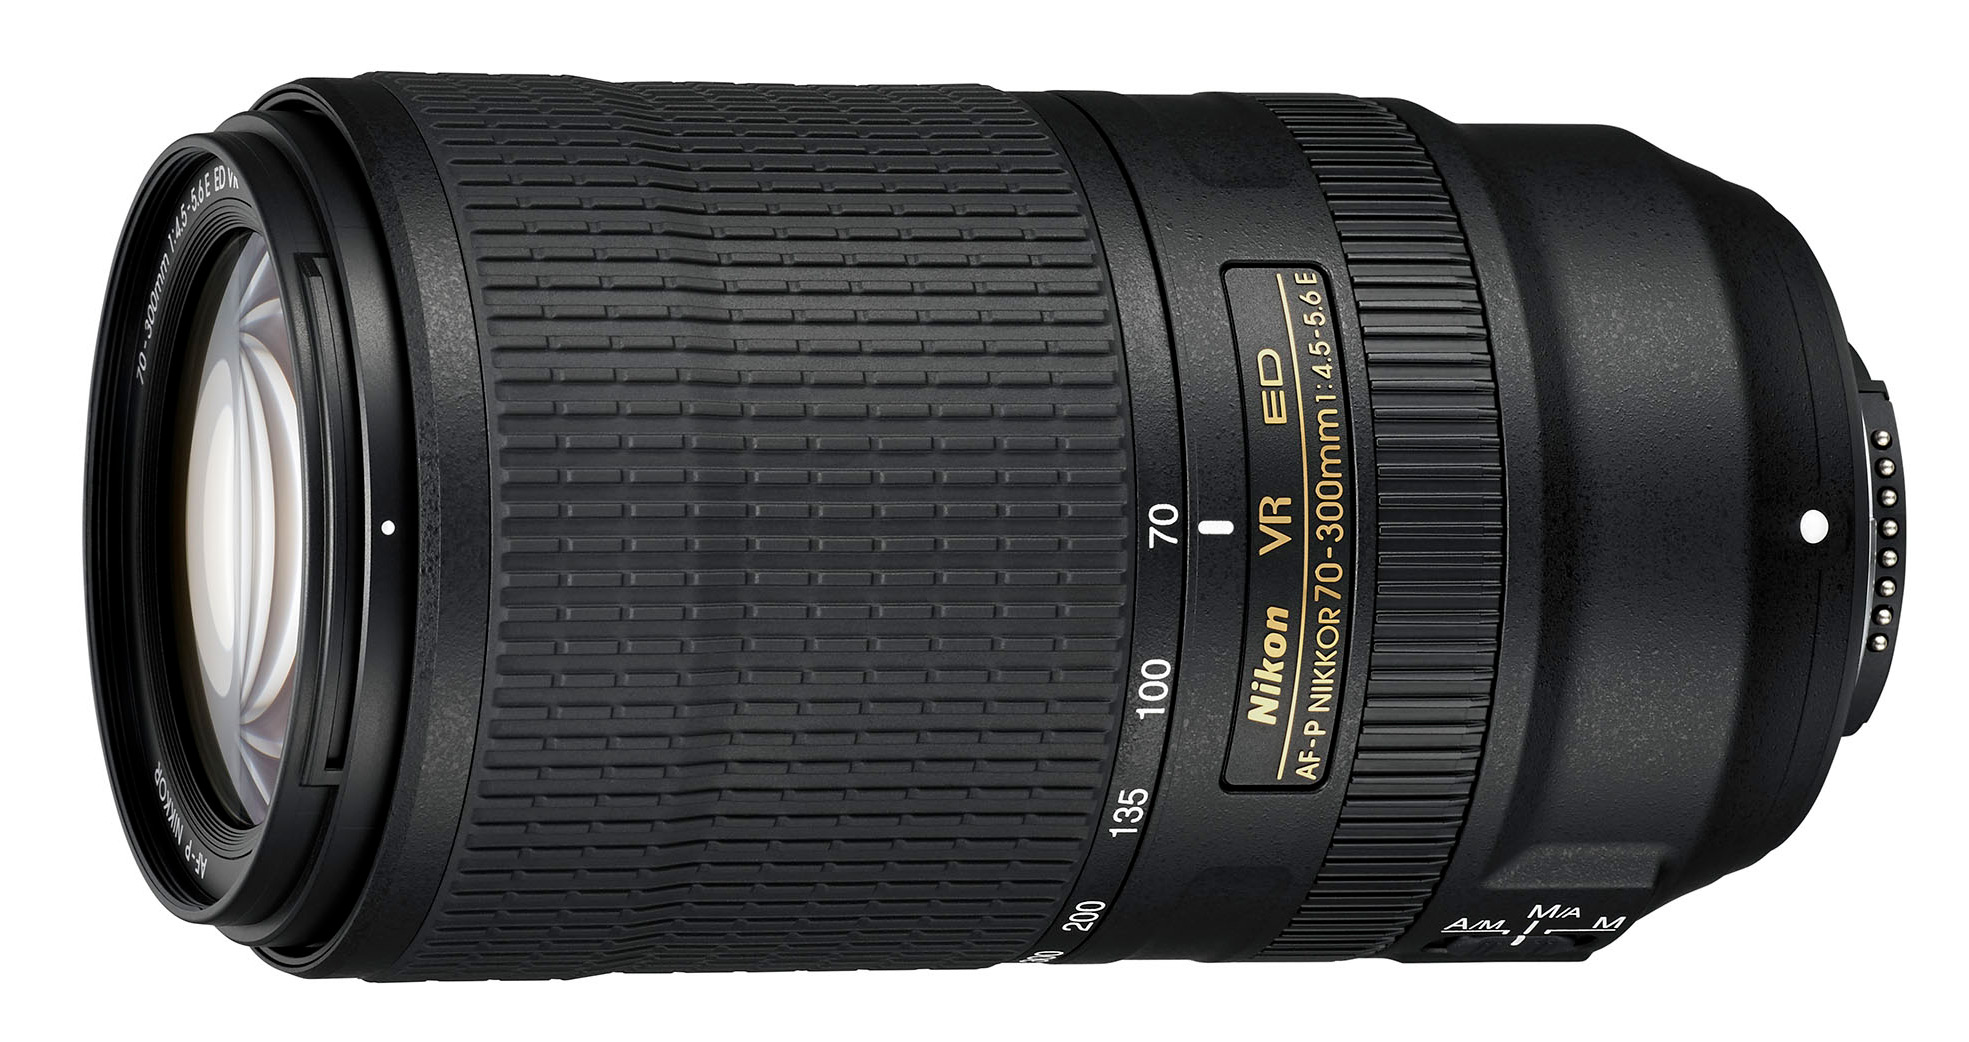 Nikon The new 70–300mm f/4.5-5.6E ED VR